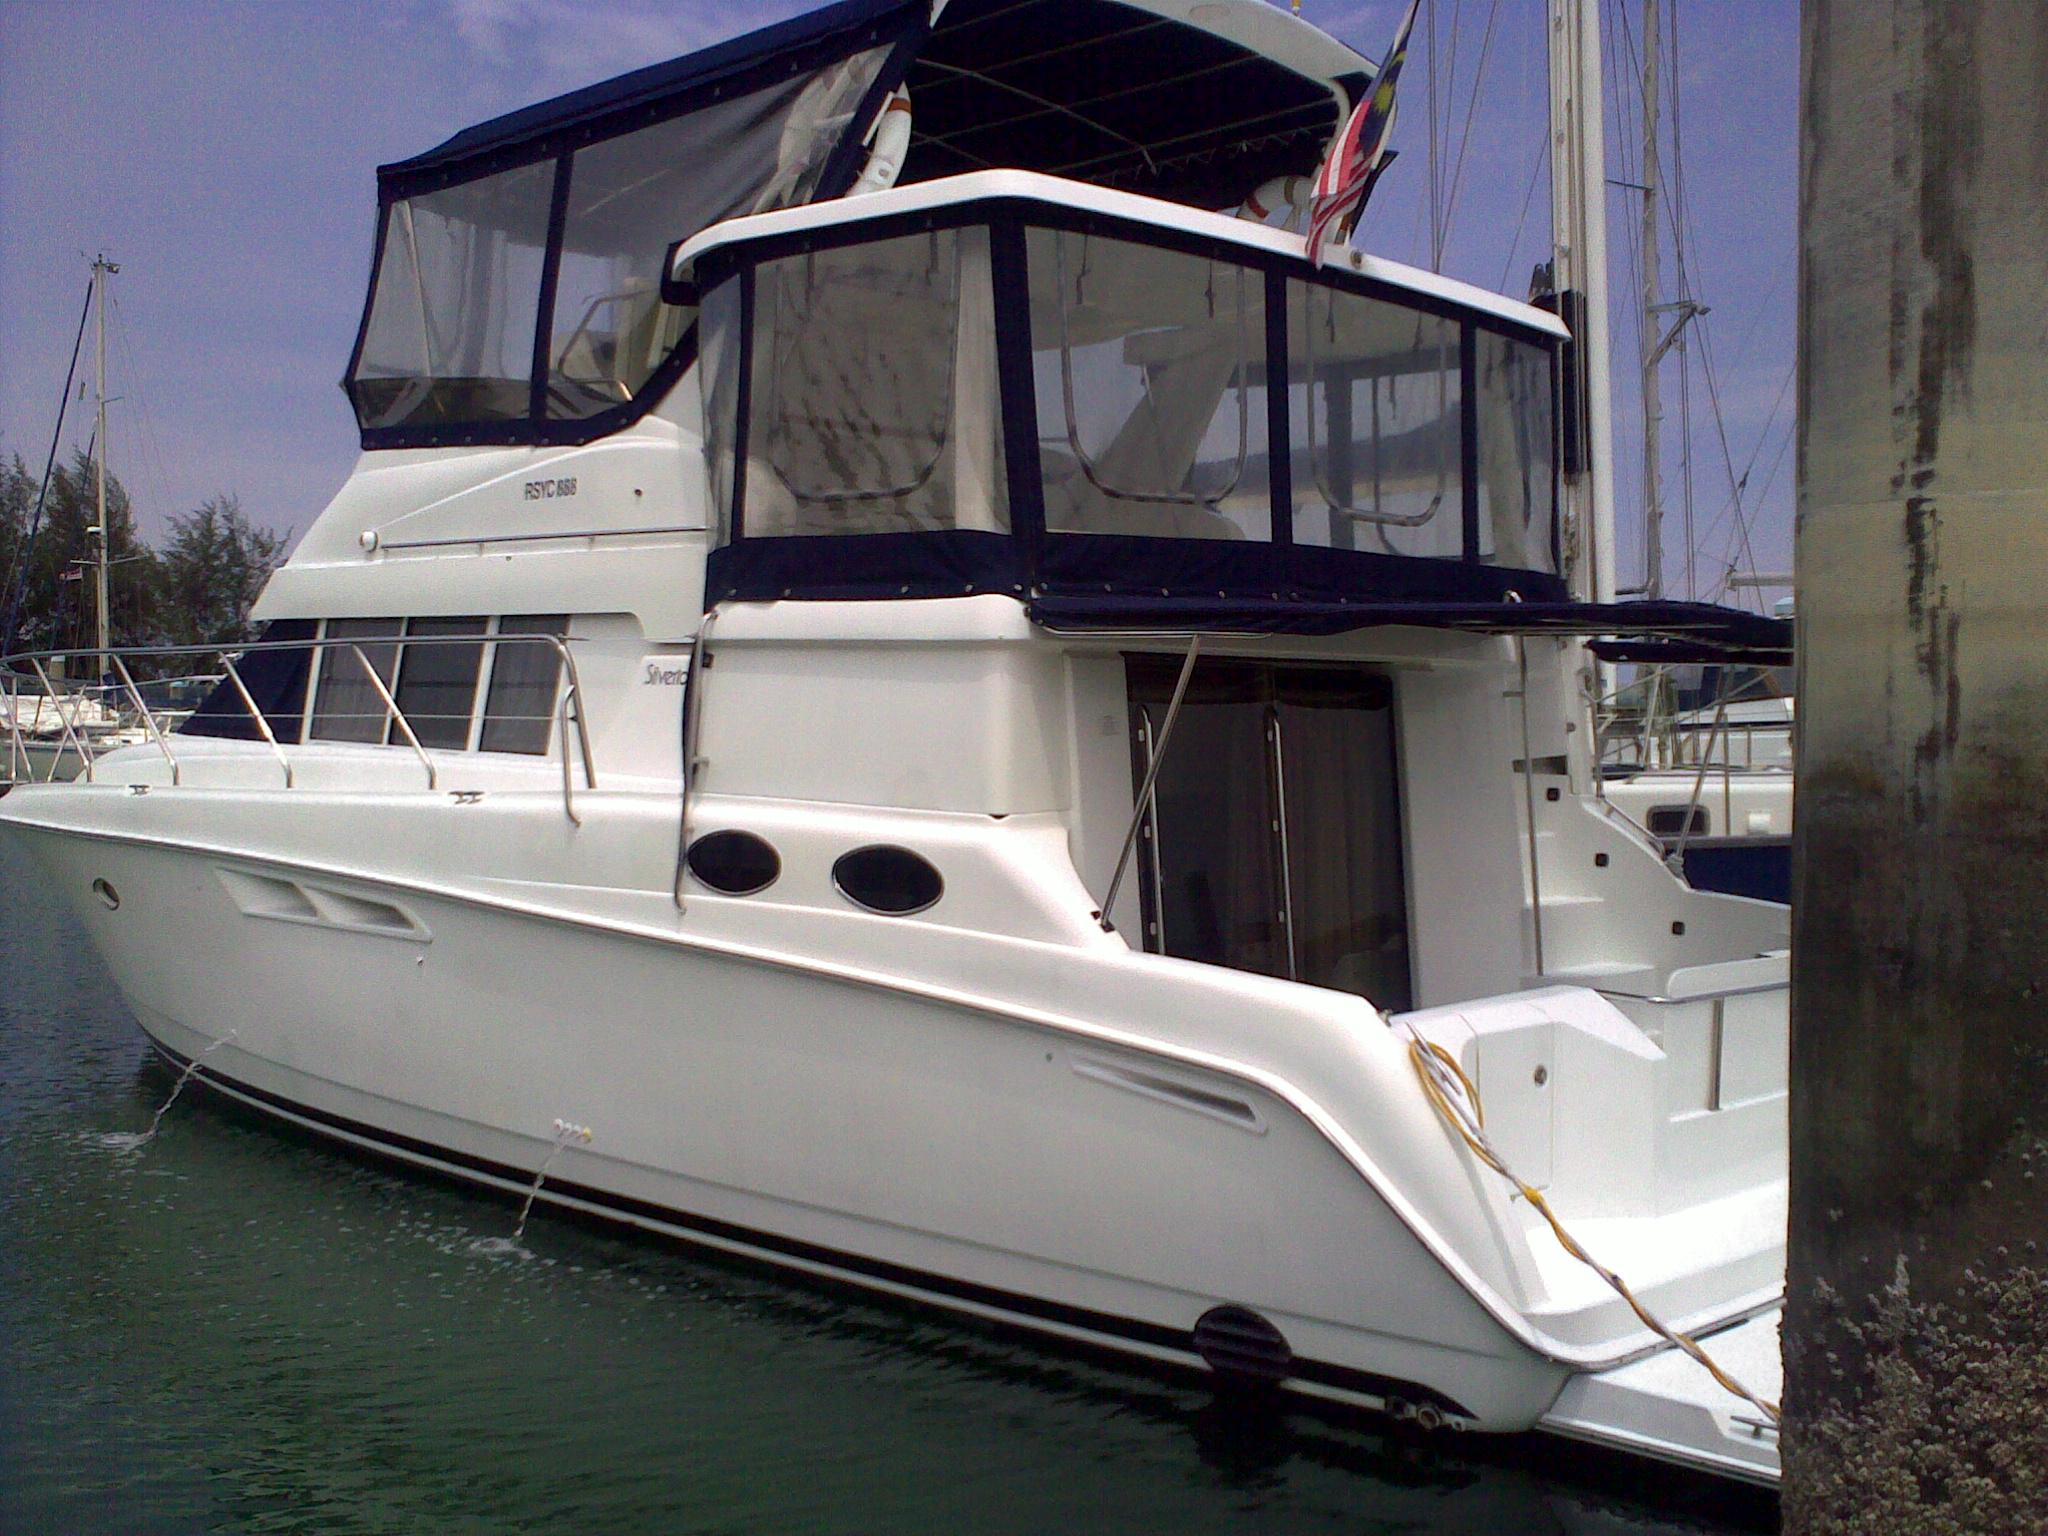 FOR SALE: Silverton 442